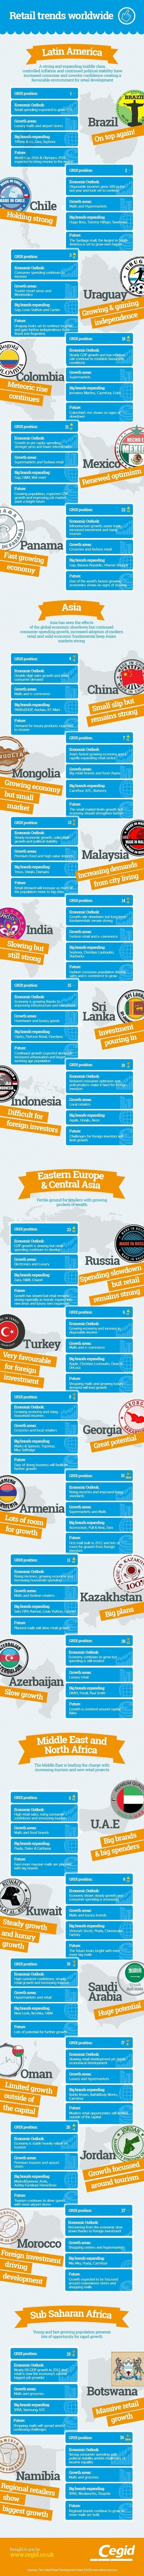 Retail Trends across Top 20 Major Countries | Infographic | All Infographics | Scoop.it